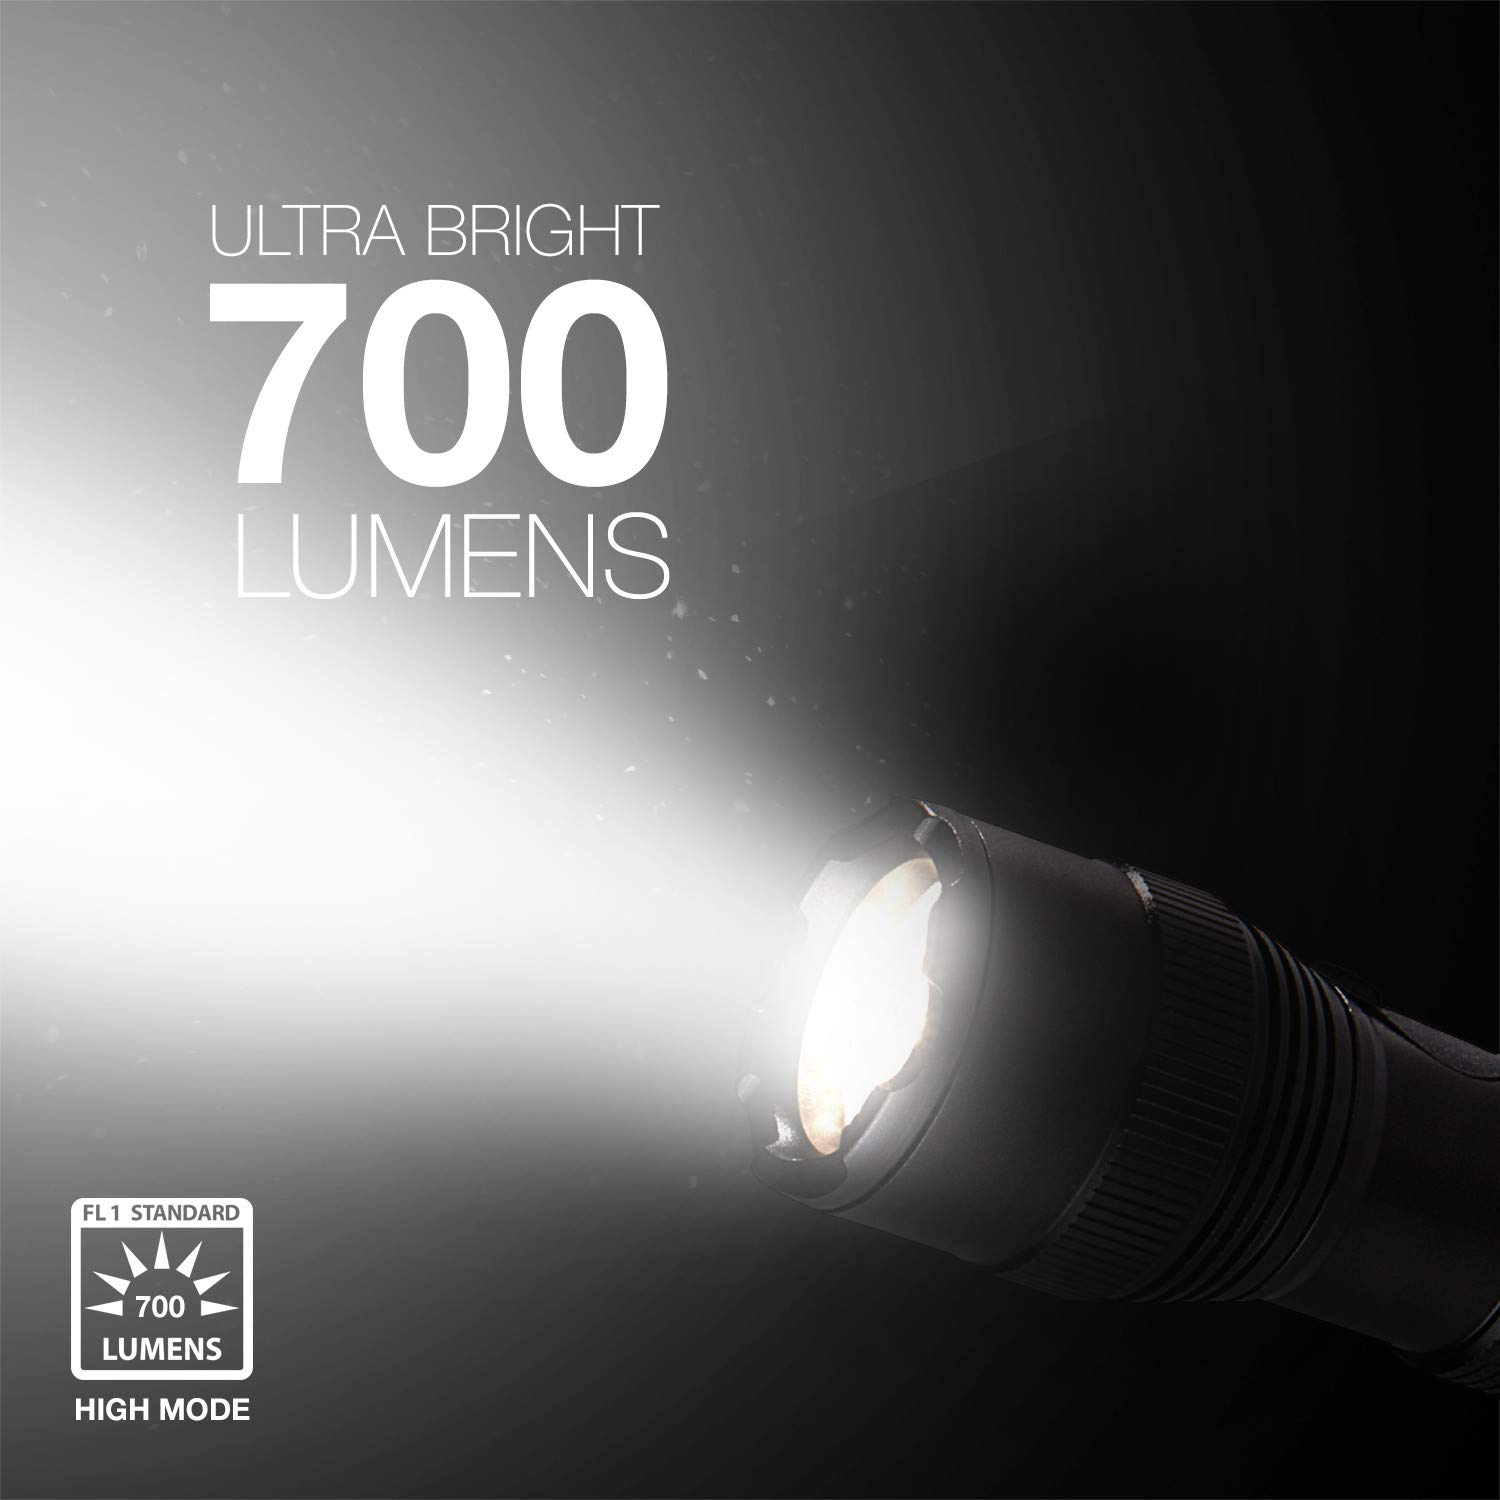 Energizer Tac-r 700 Rechargeable Tactical Flashlight, 700 Lumens 3 Modes by Energizer (Image #3)